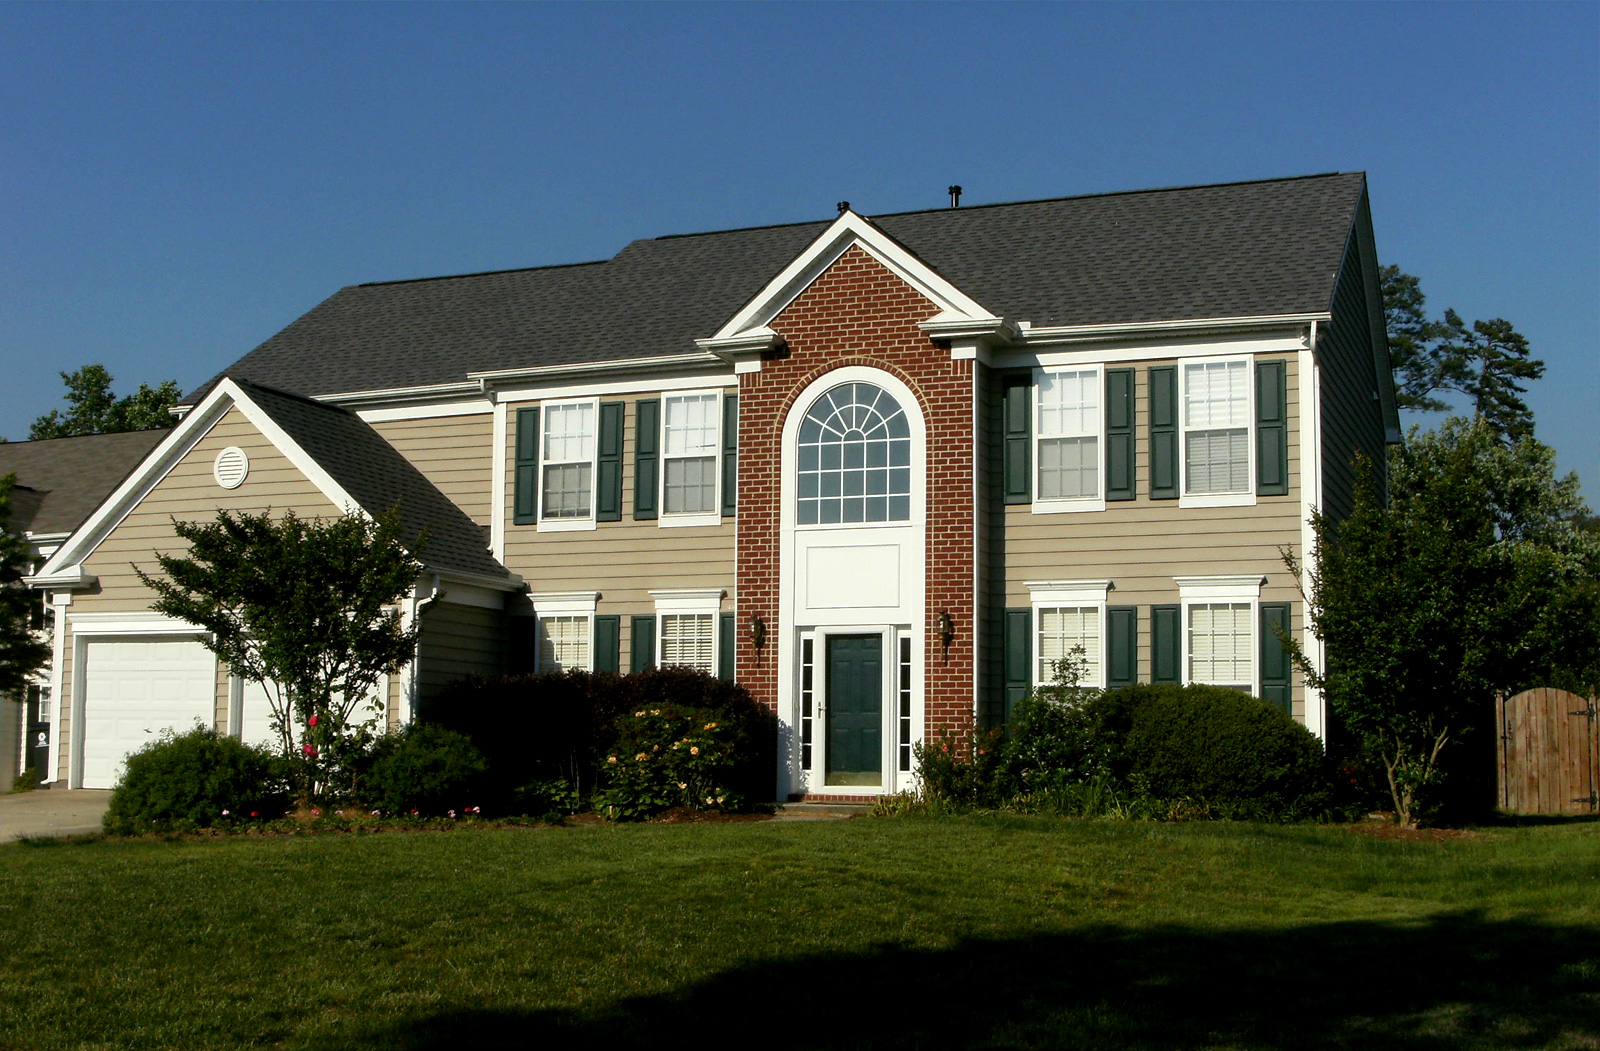 05 2013 Residential Roofing In Statesboro, ...